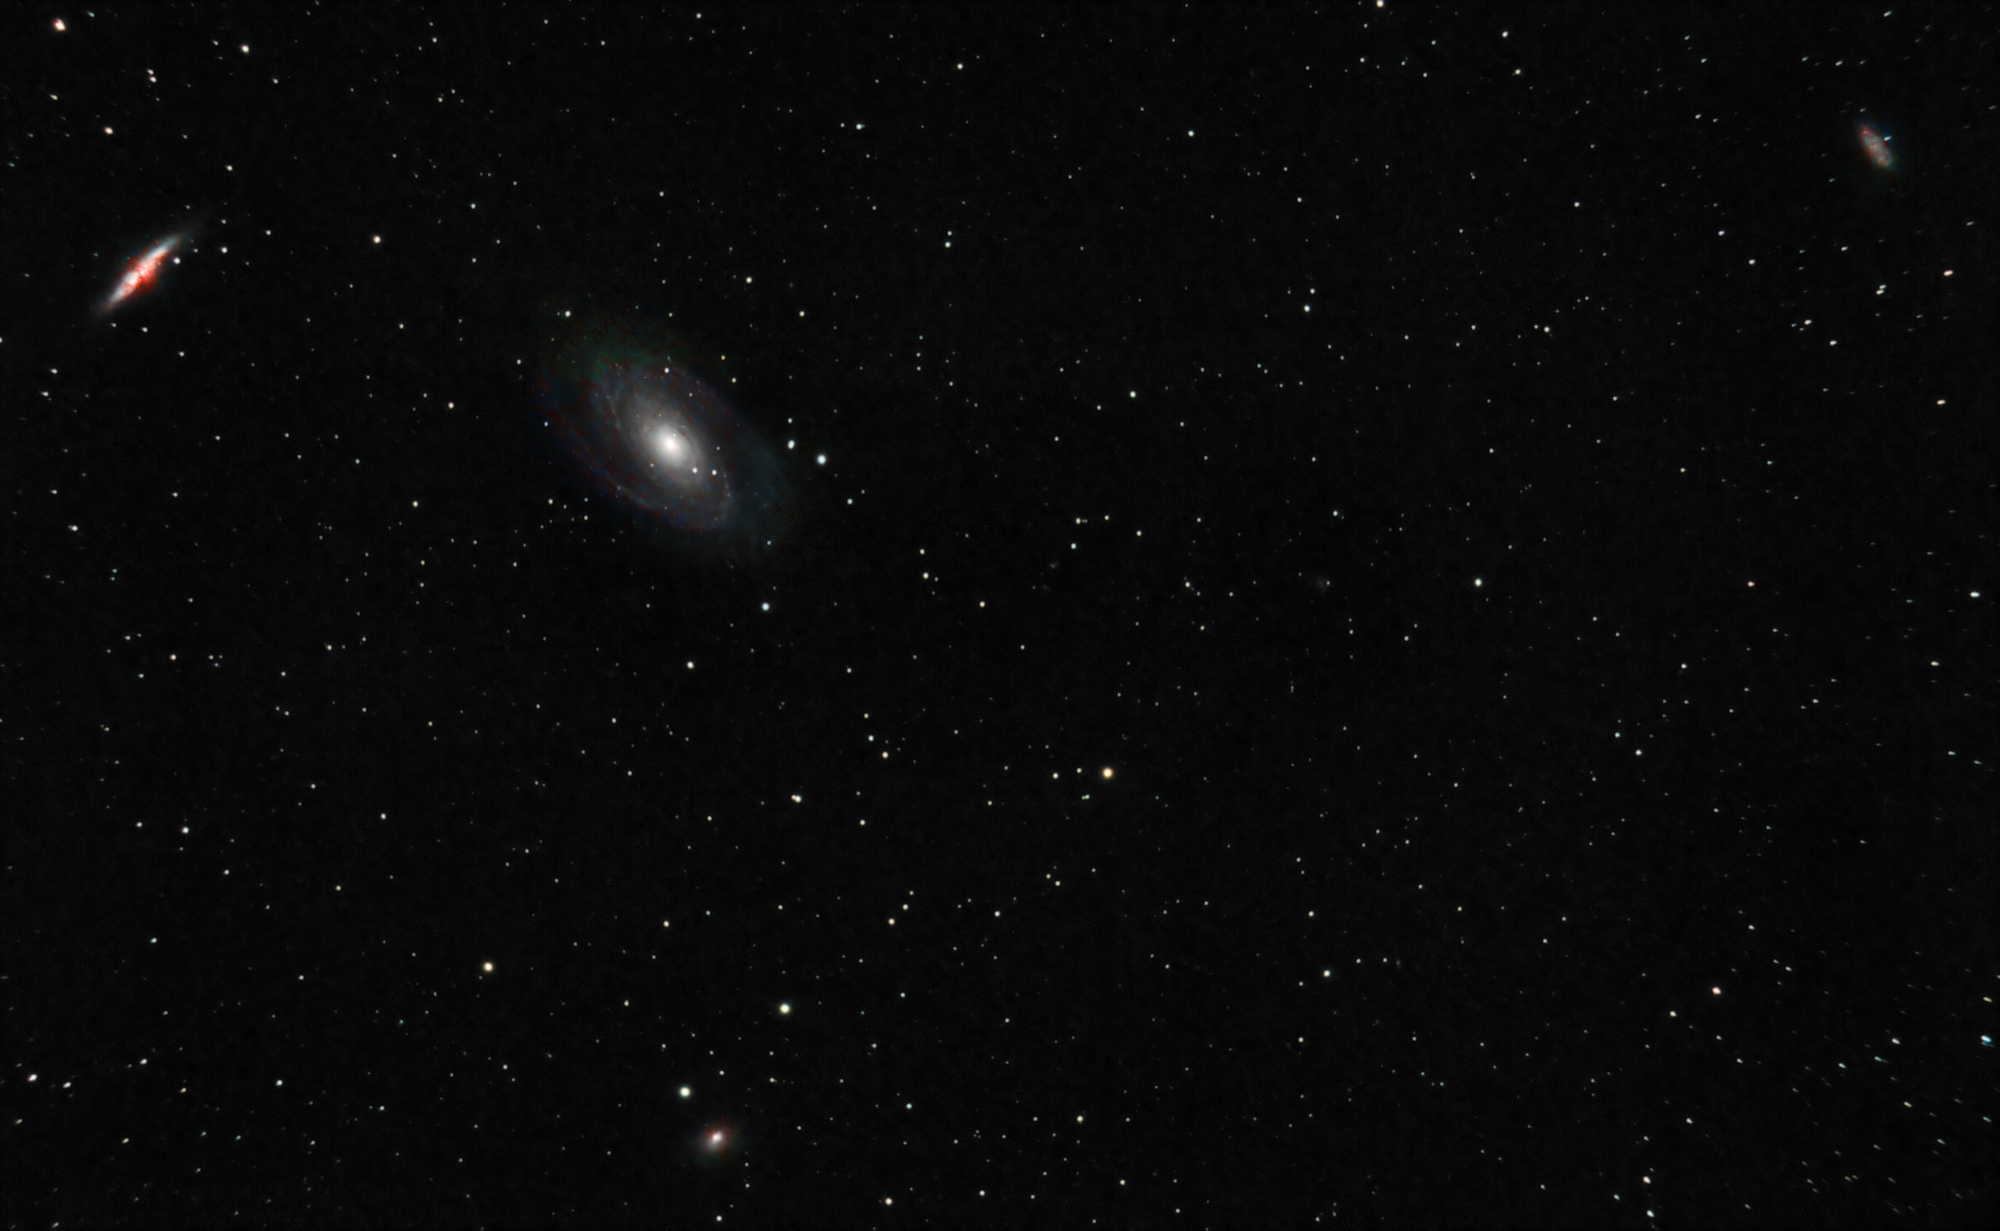 r_pp_Galaxie_Bode_M81_39x300s_ISO800_stacked_proccessed_TIFF_for_PS_-_V4.3.jpg